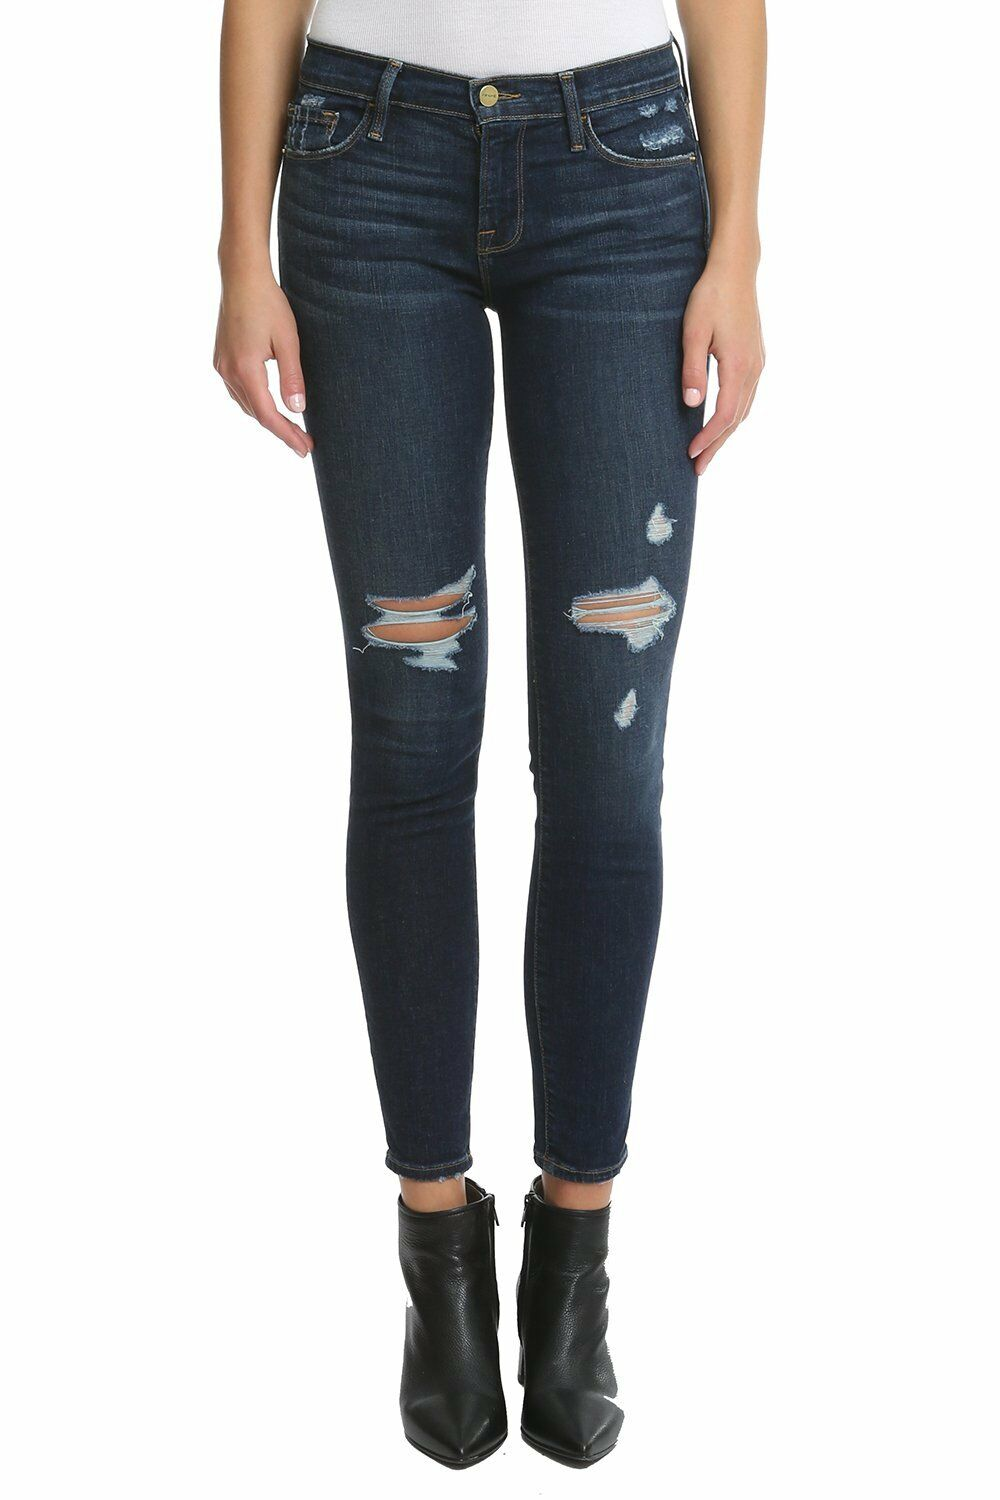 230 FRAME Denim Le Skinny de Jeanne in Wriley Destroyed Wash - Size 25